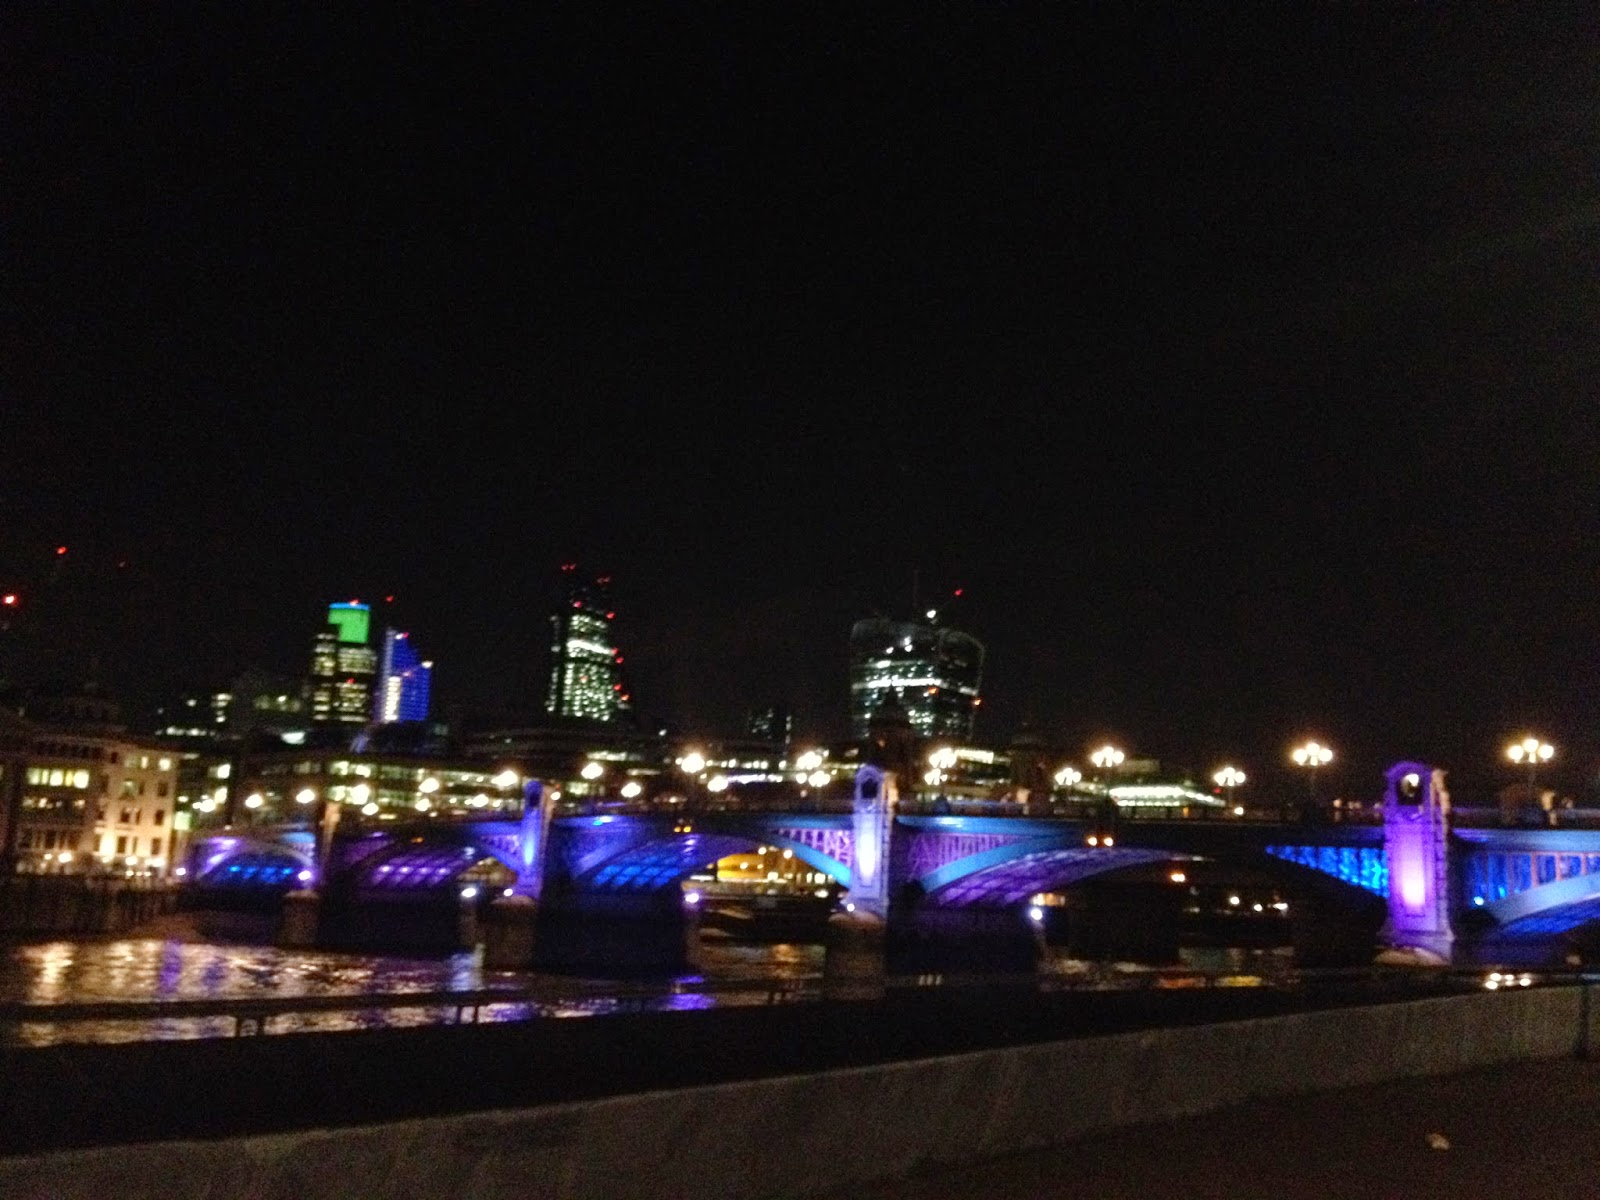 Southwark Bridge and the City of London (photo credit: http://researchandramblings.blogspot.com/)